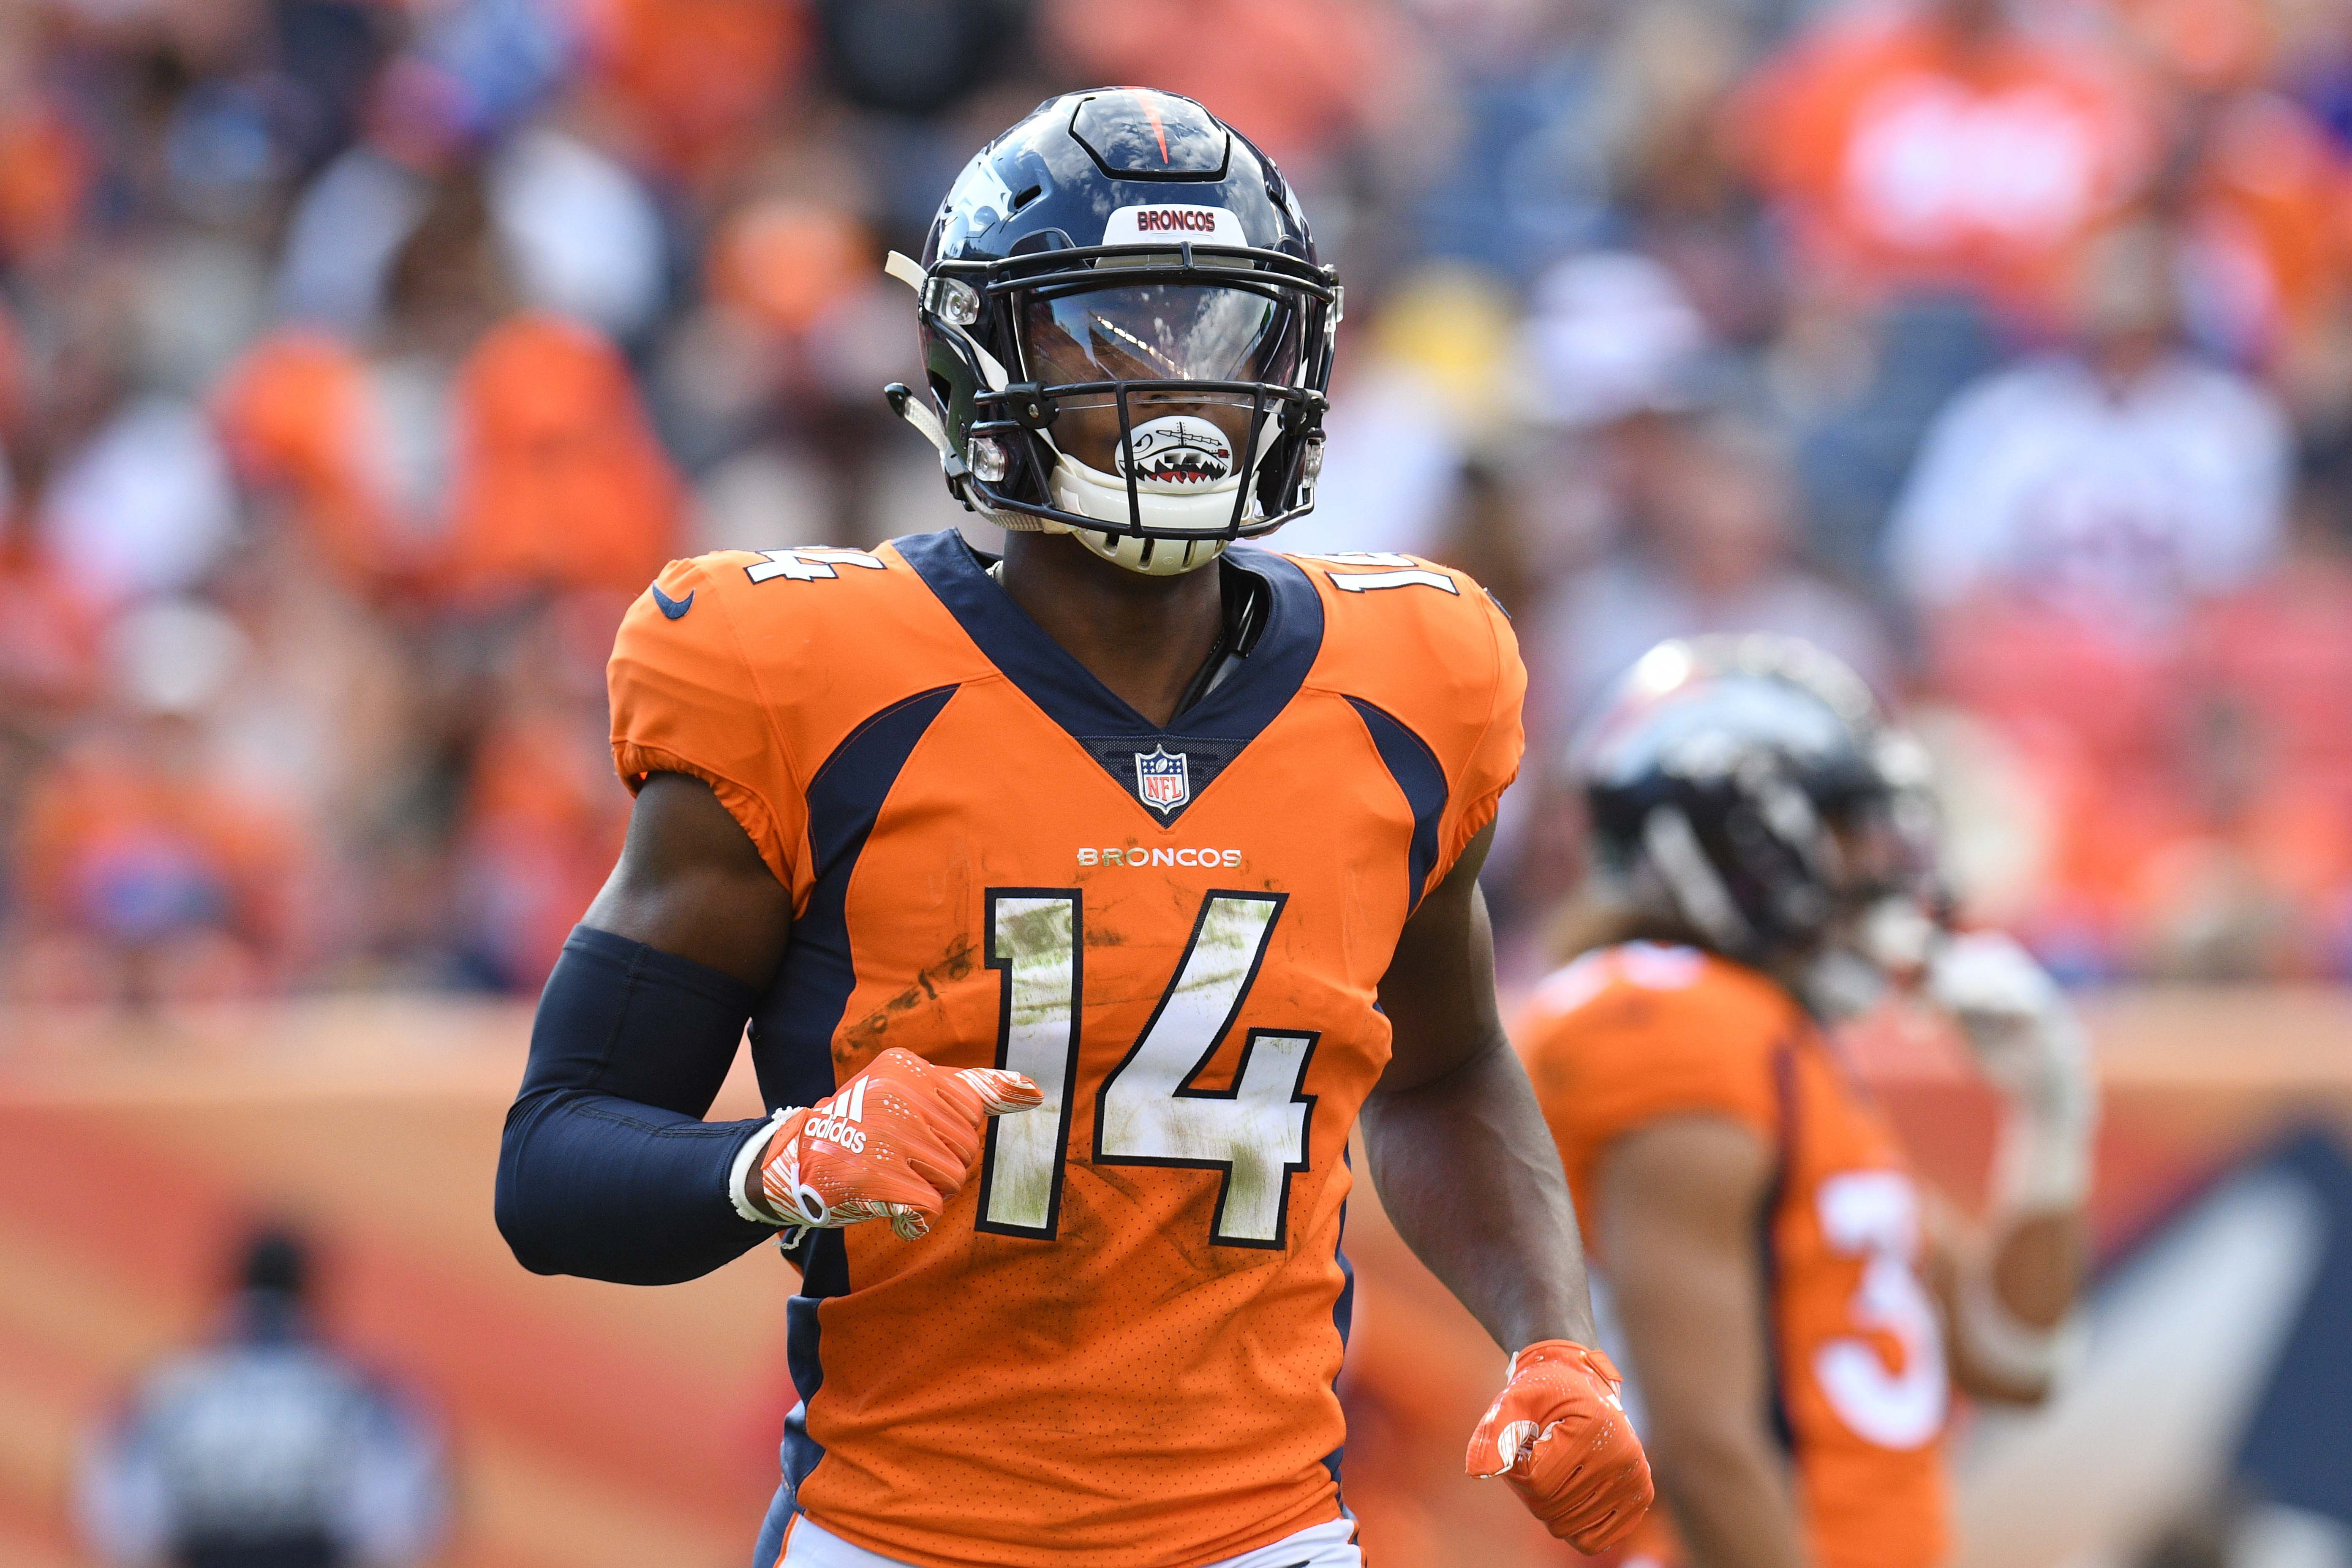 Broncos' WR Courtland Sutton Named to Pro Bowl, Replacing Injured DeAndre Hopkins: Report